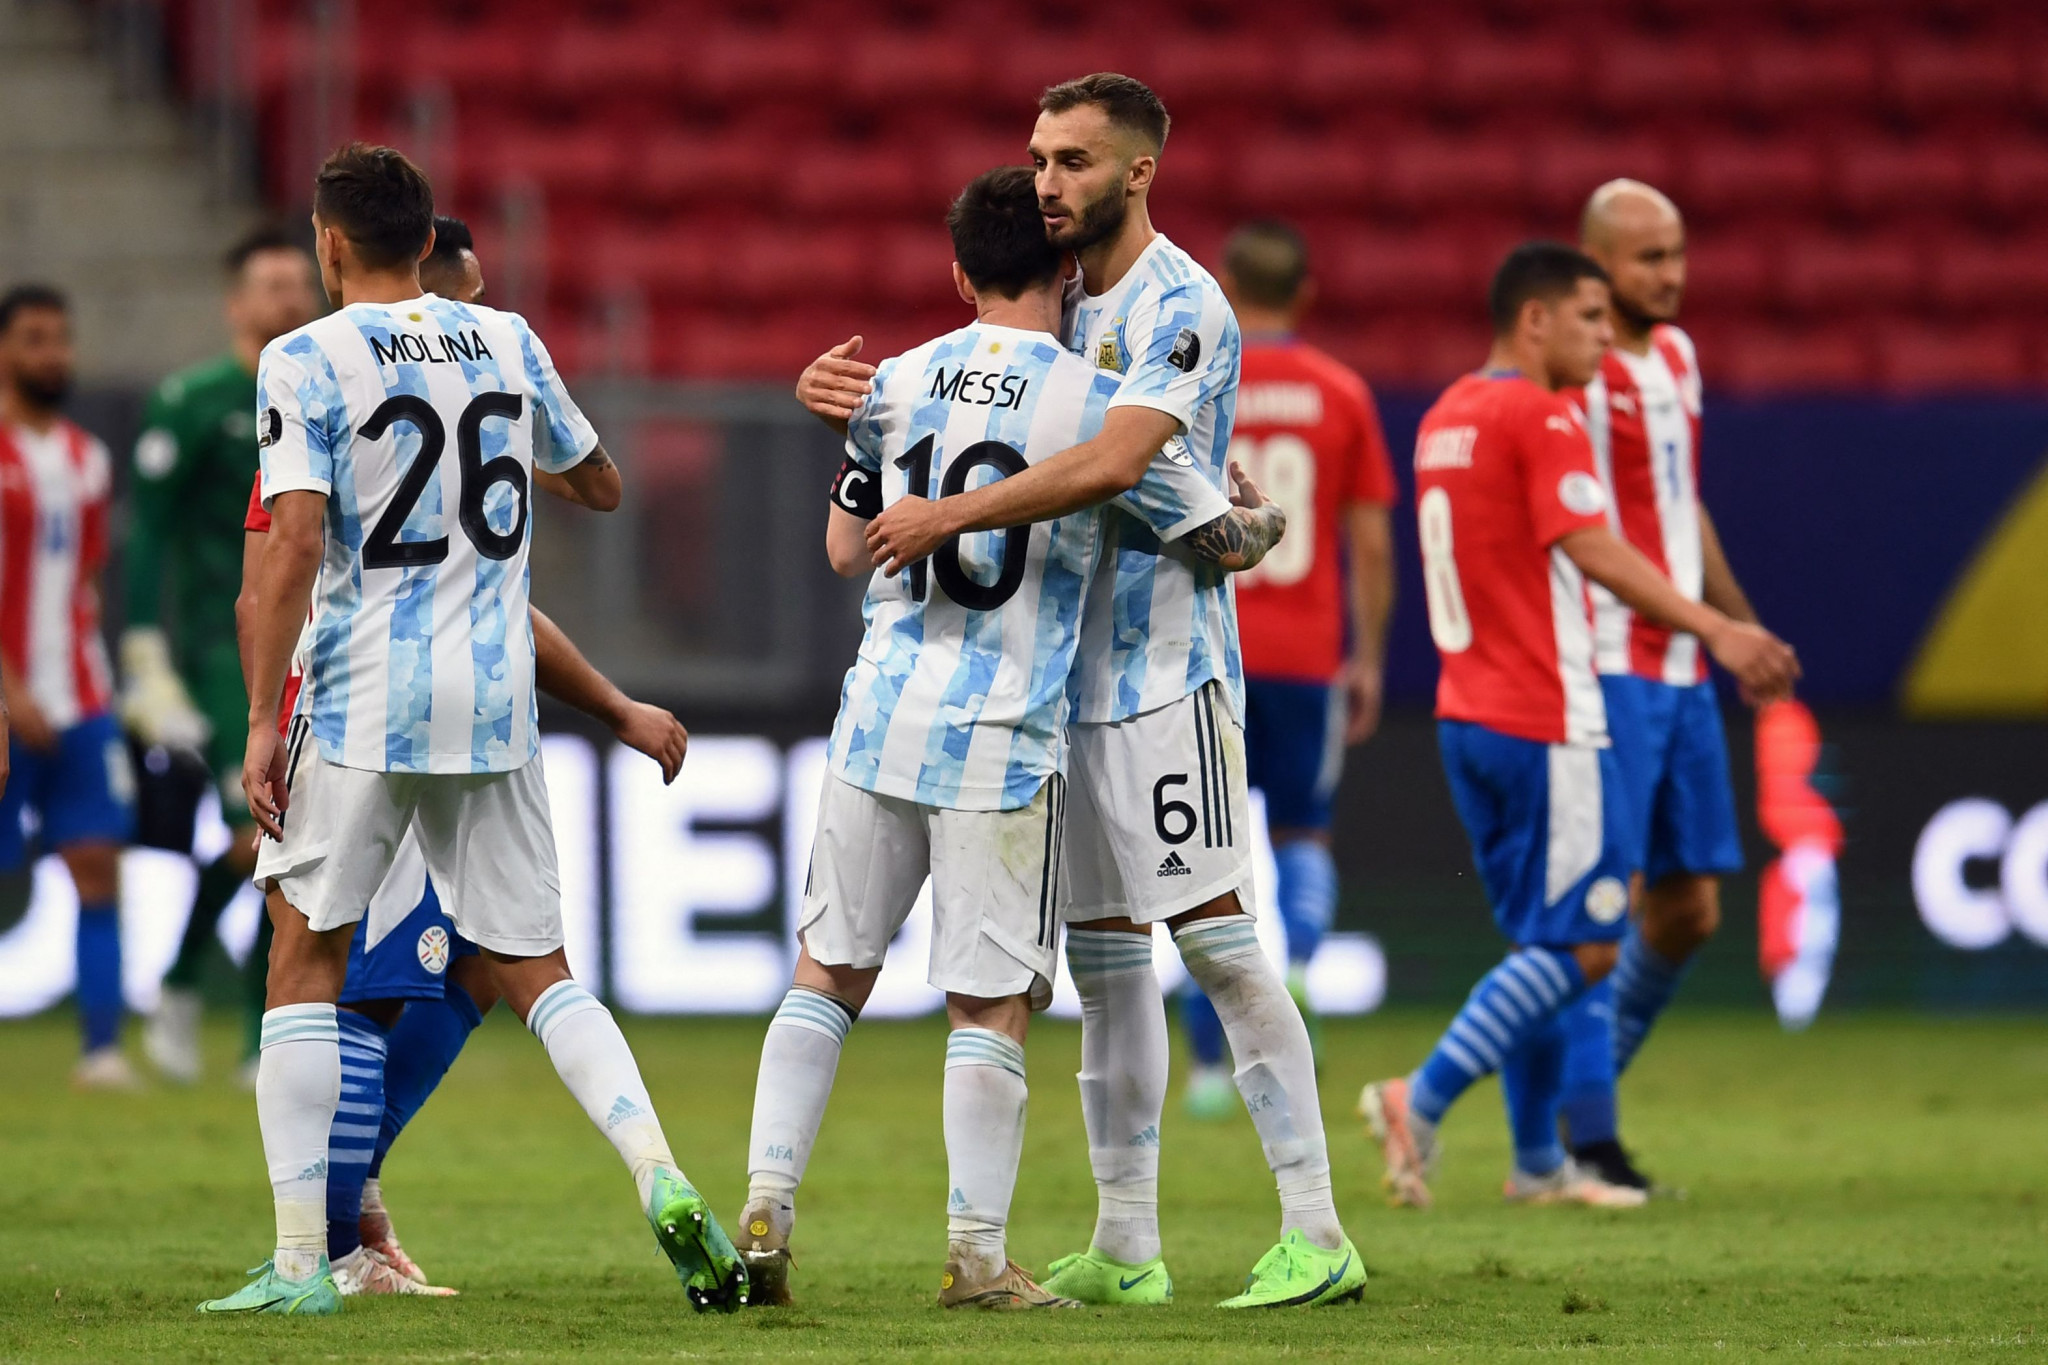 More than 100 COVID-19 cases reported at Copa América as Argentina top Group A